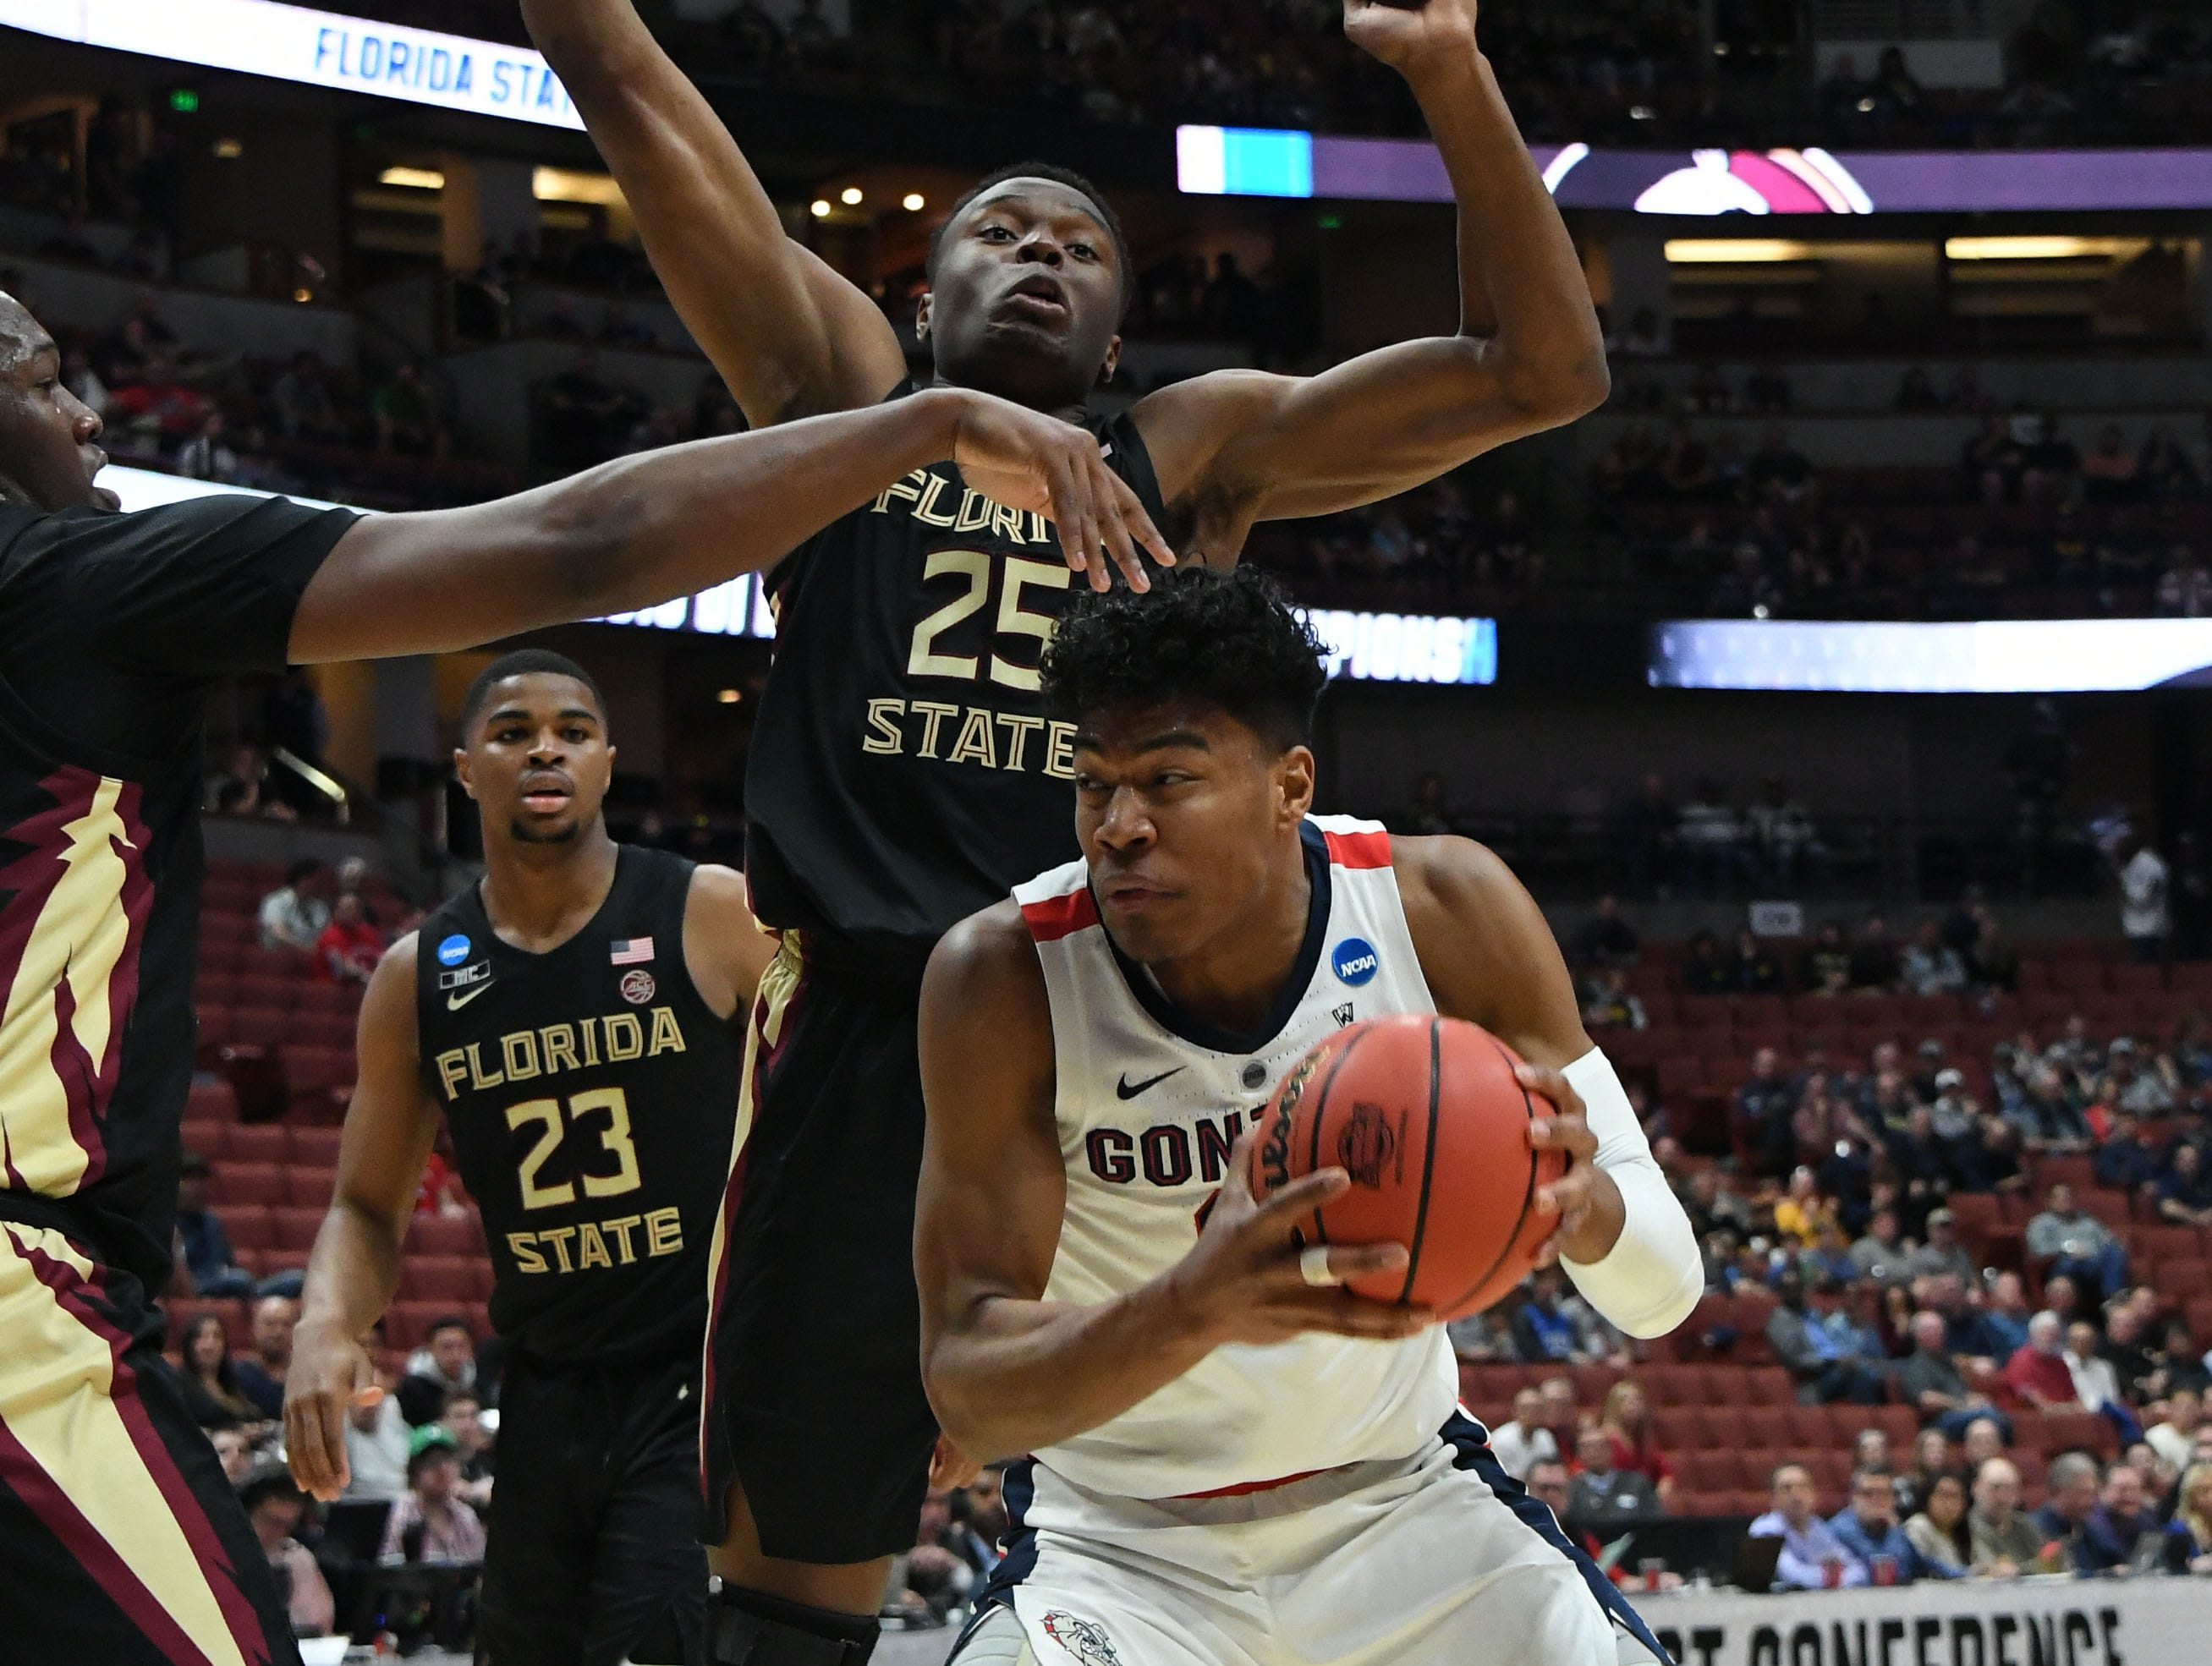 March 28, 2019; Anaheim, CA, USA; Gonzaga Bulldogs forward Rui Hachimura (21) moves the ball against Florida State Seminoles forward Mfiondu Kabengele (25) and guard M.J. Walker (23) during the first half in the semifinals of the west regional of the 2019 NCAA Tournament at Honda Center. Mandatory Credit: Richard Mackson-USA TODAY Sports